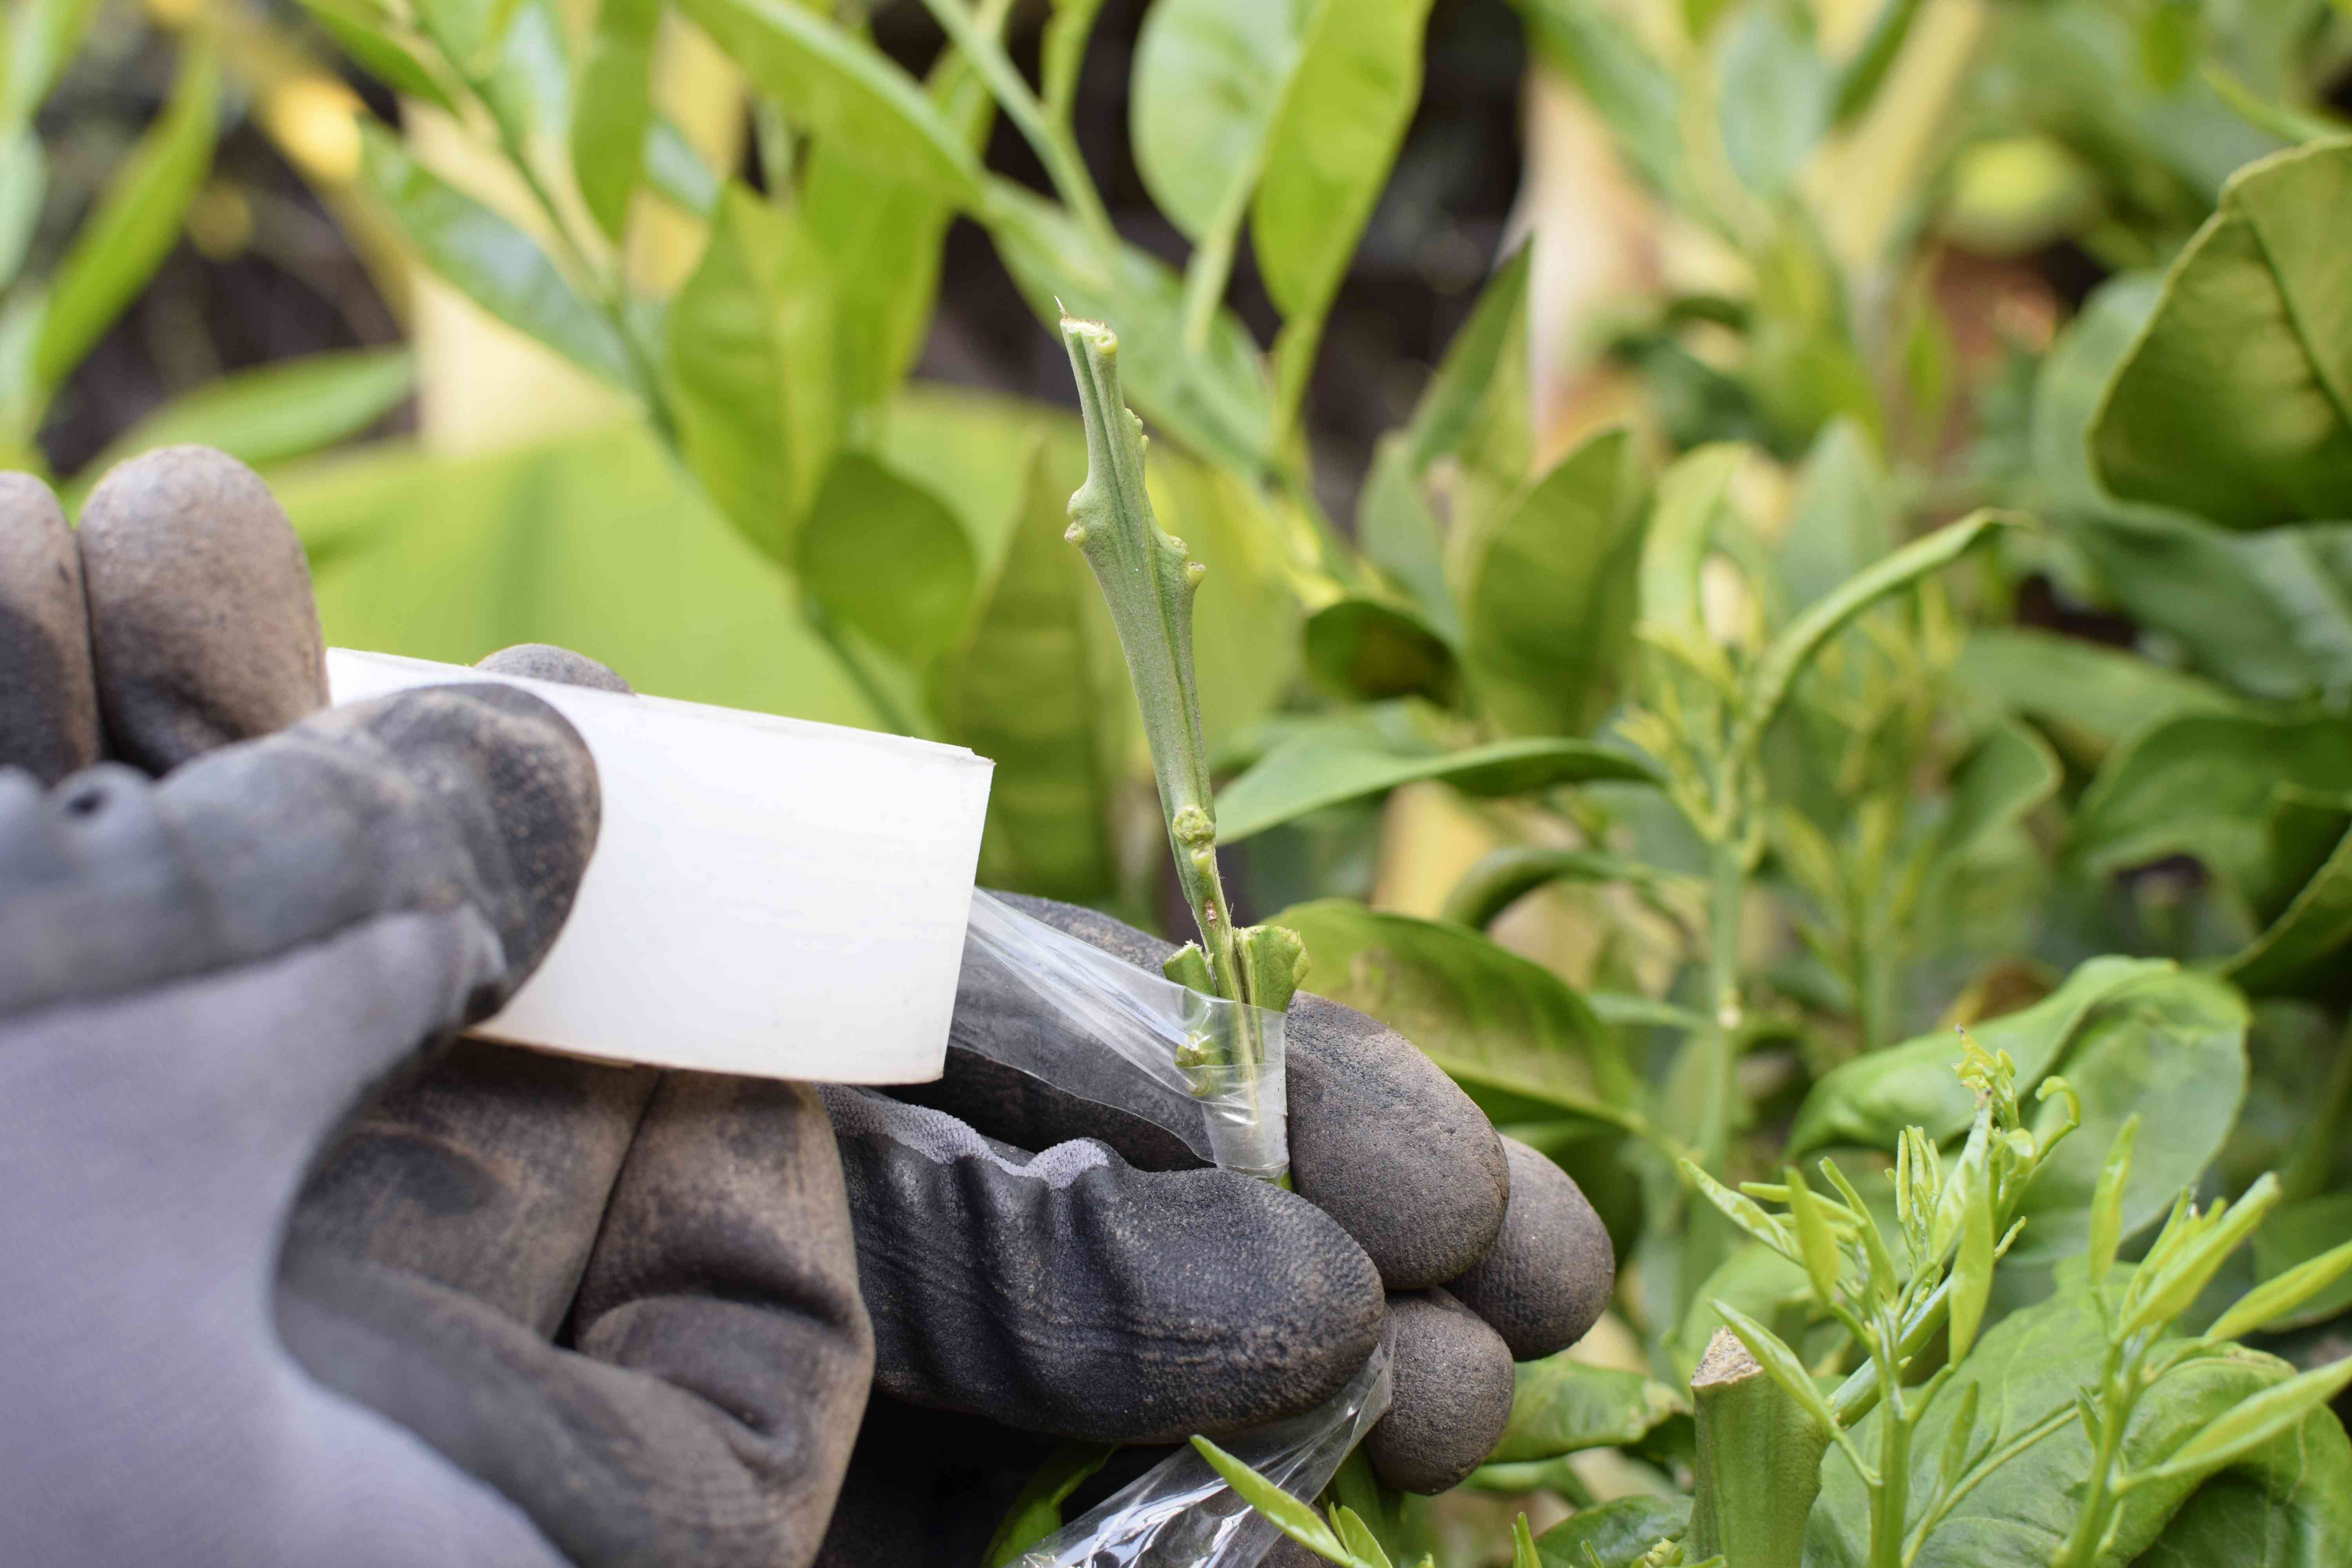 Scion buds around plant stem with planters tape with gloves